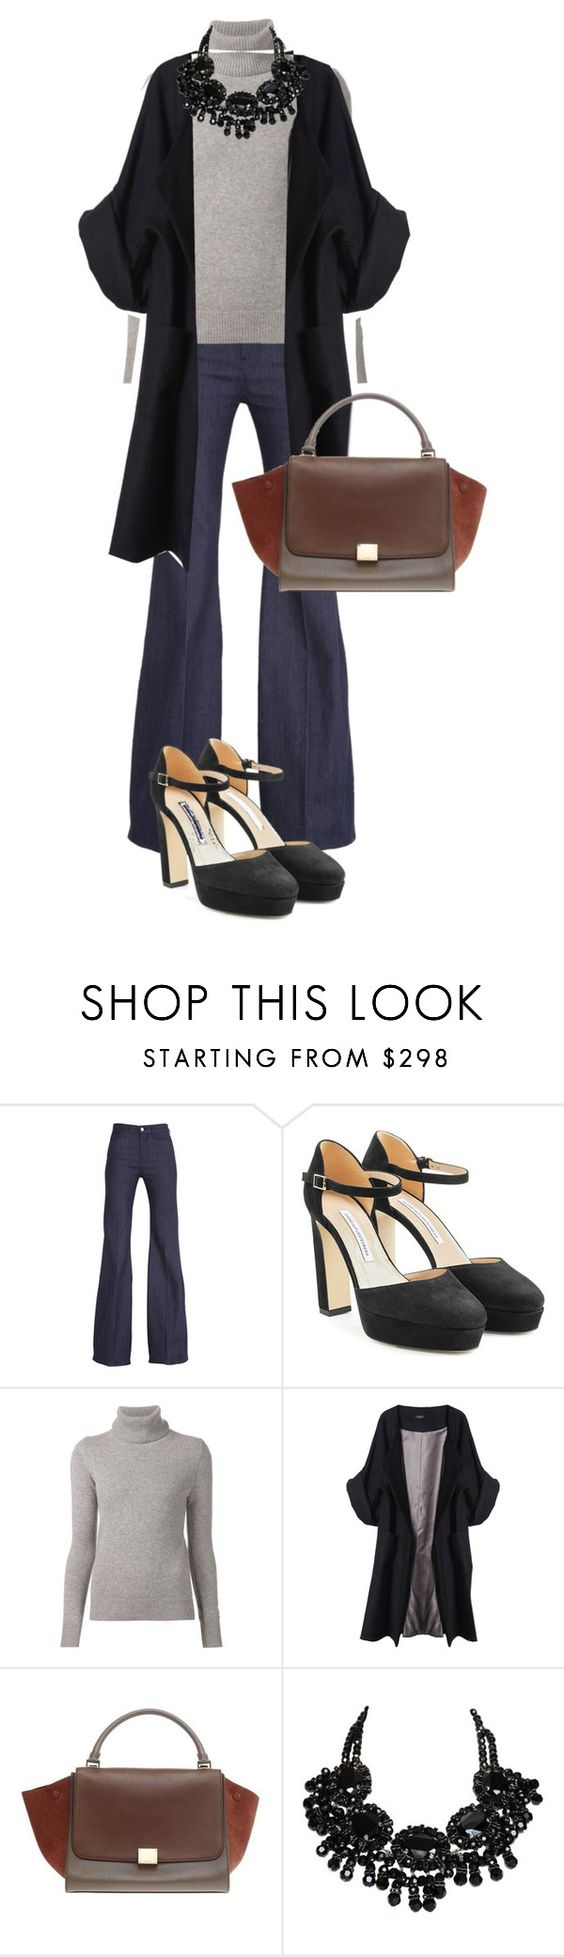 """""""Без названия #424"""" by berlinmoskva ❤ liked on Polyvore featuring 7 For All Mankind, Diane Von Furstenberg, Chloé and Merci Me London"""